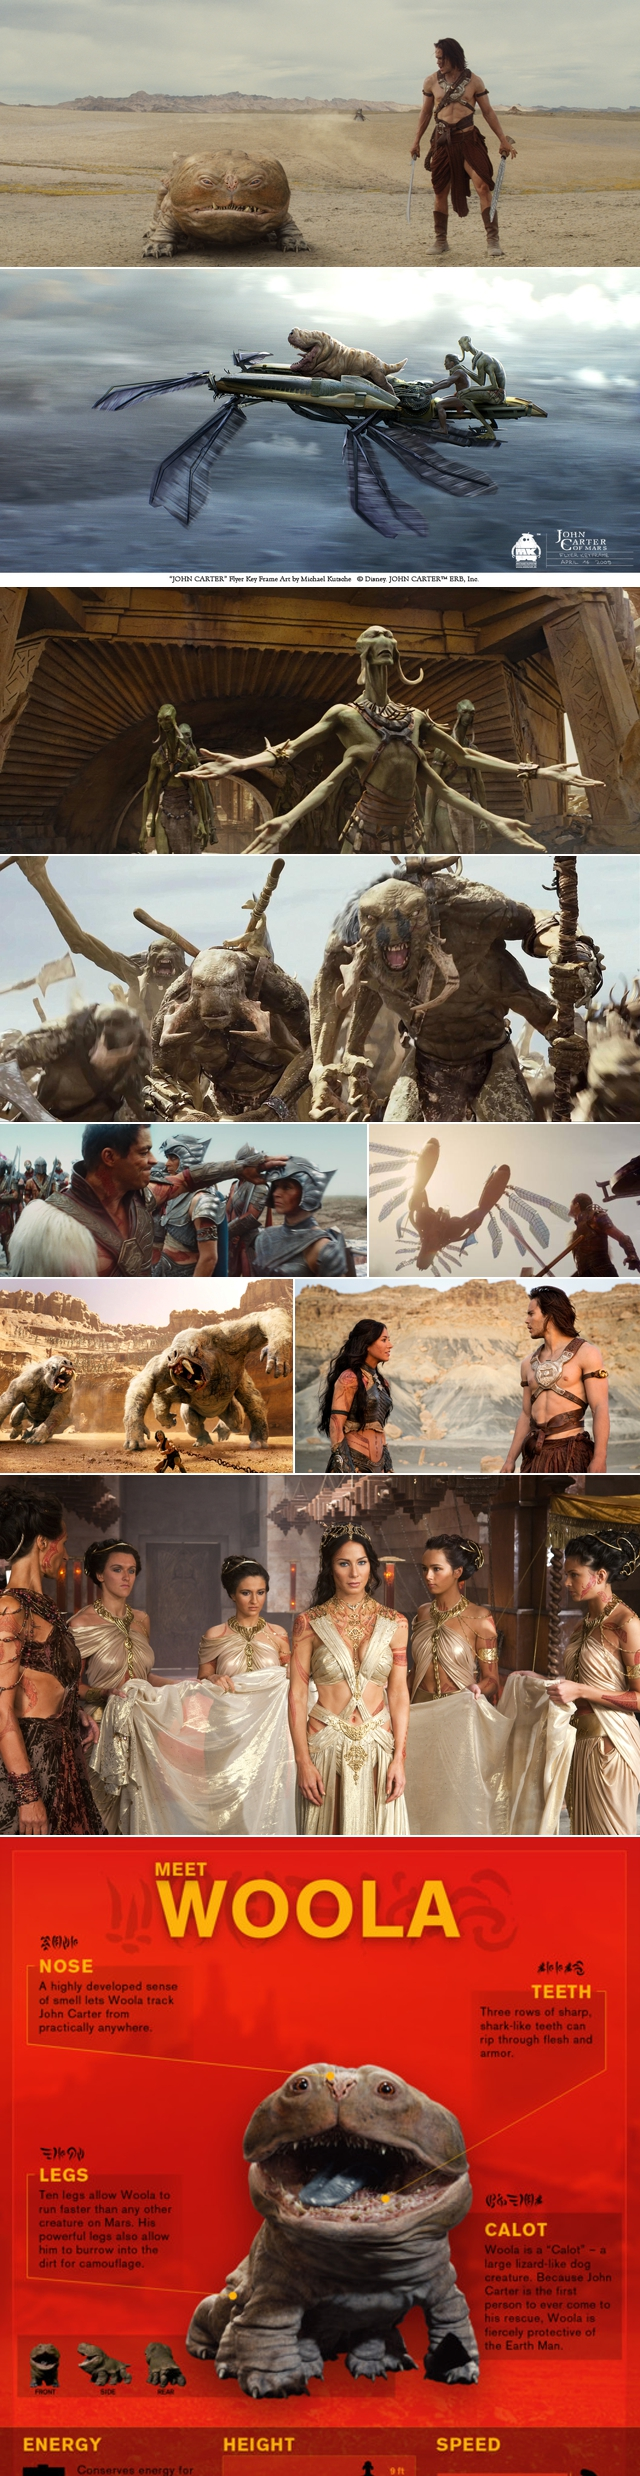 The Alien Movie Project Watched John Carter